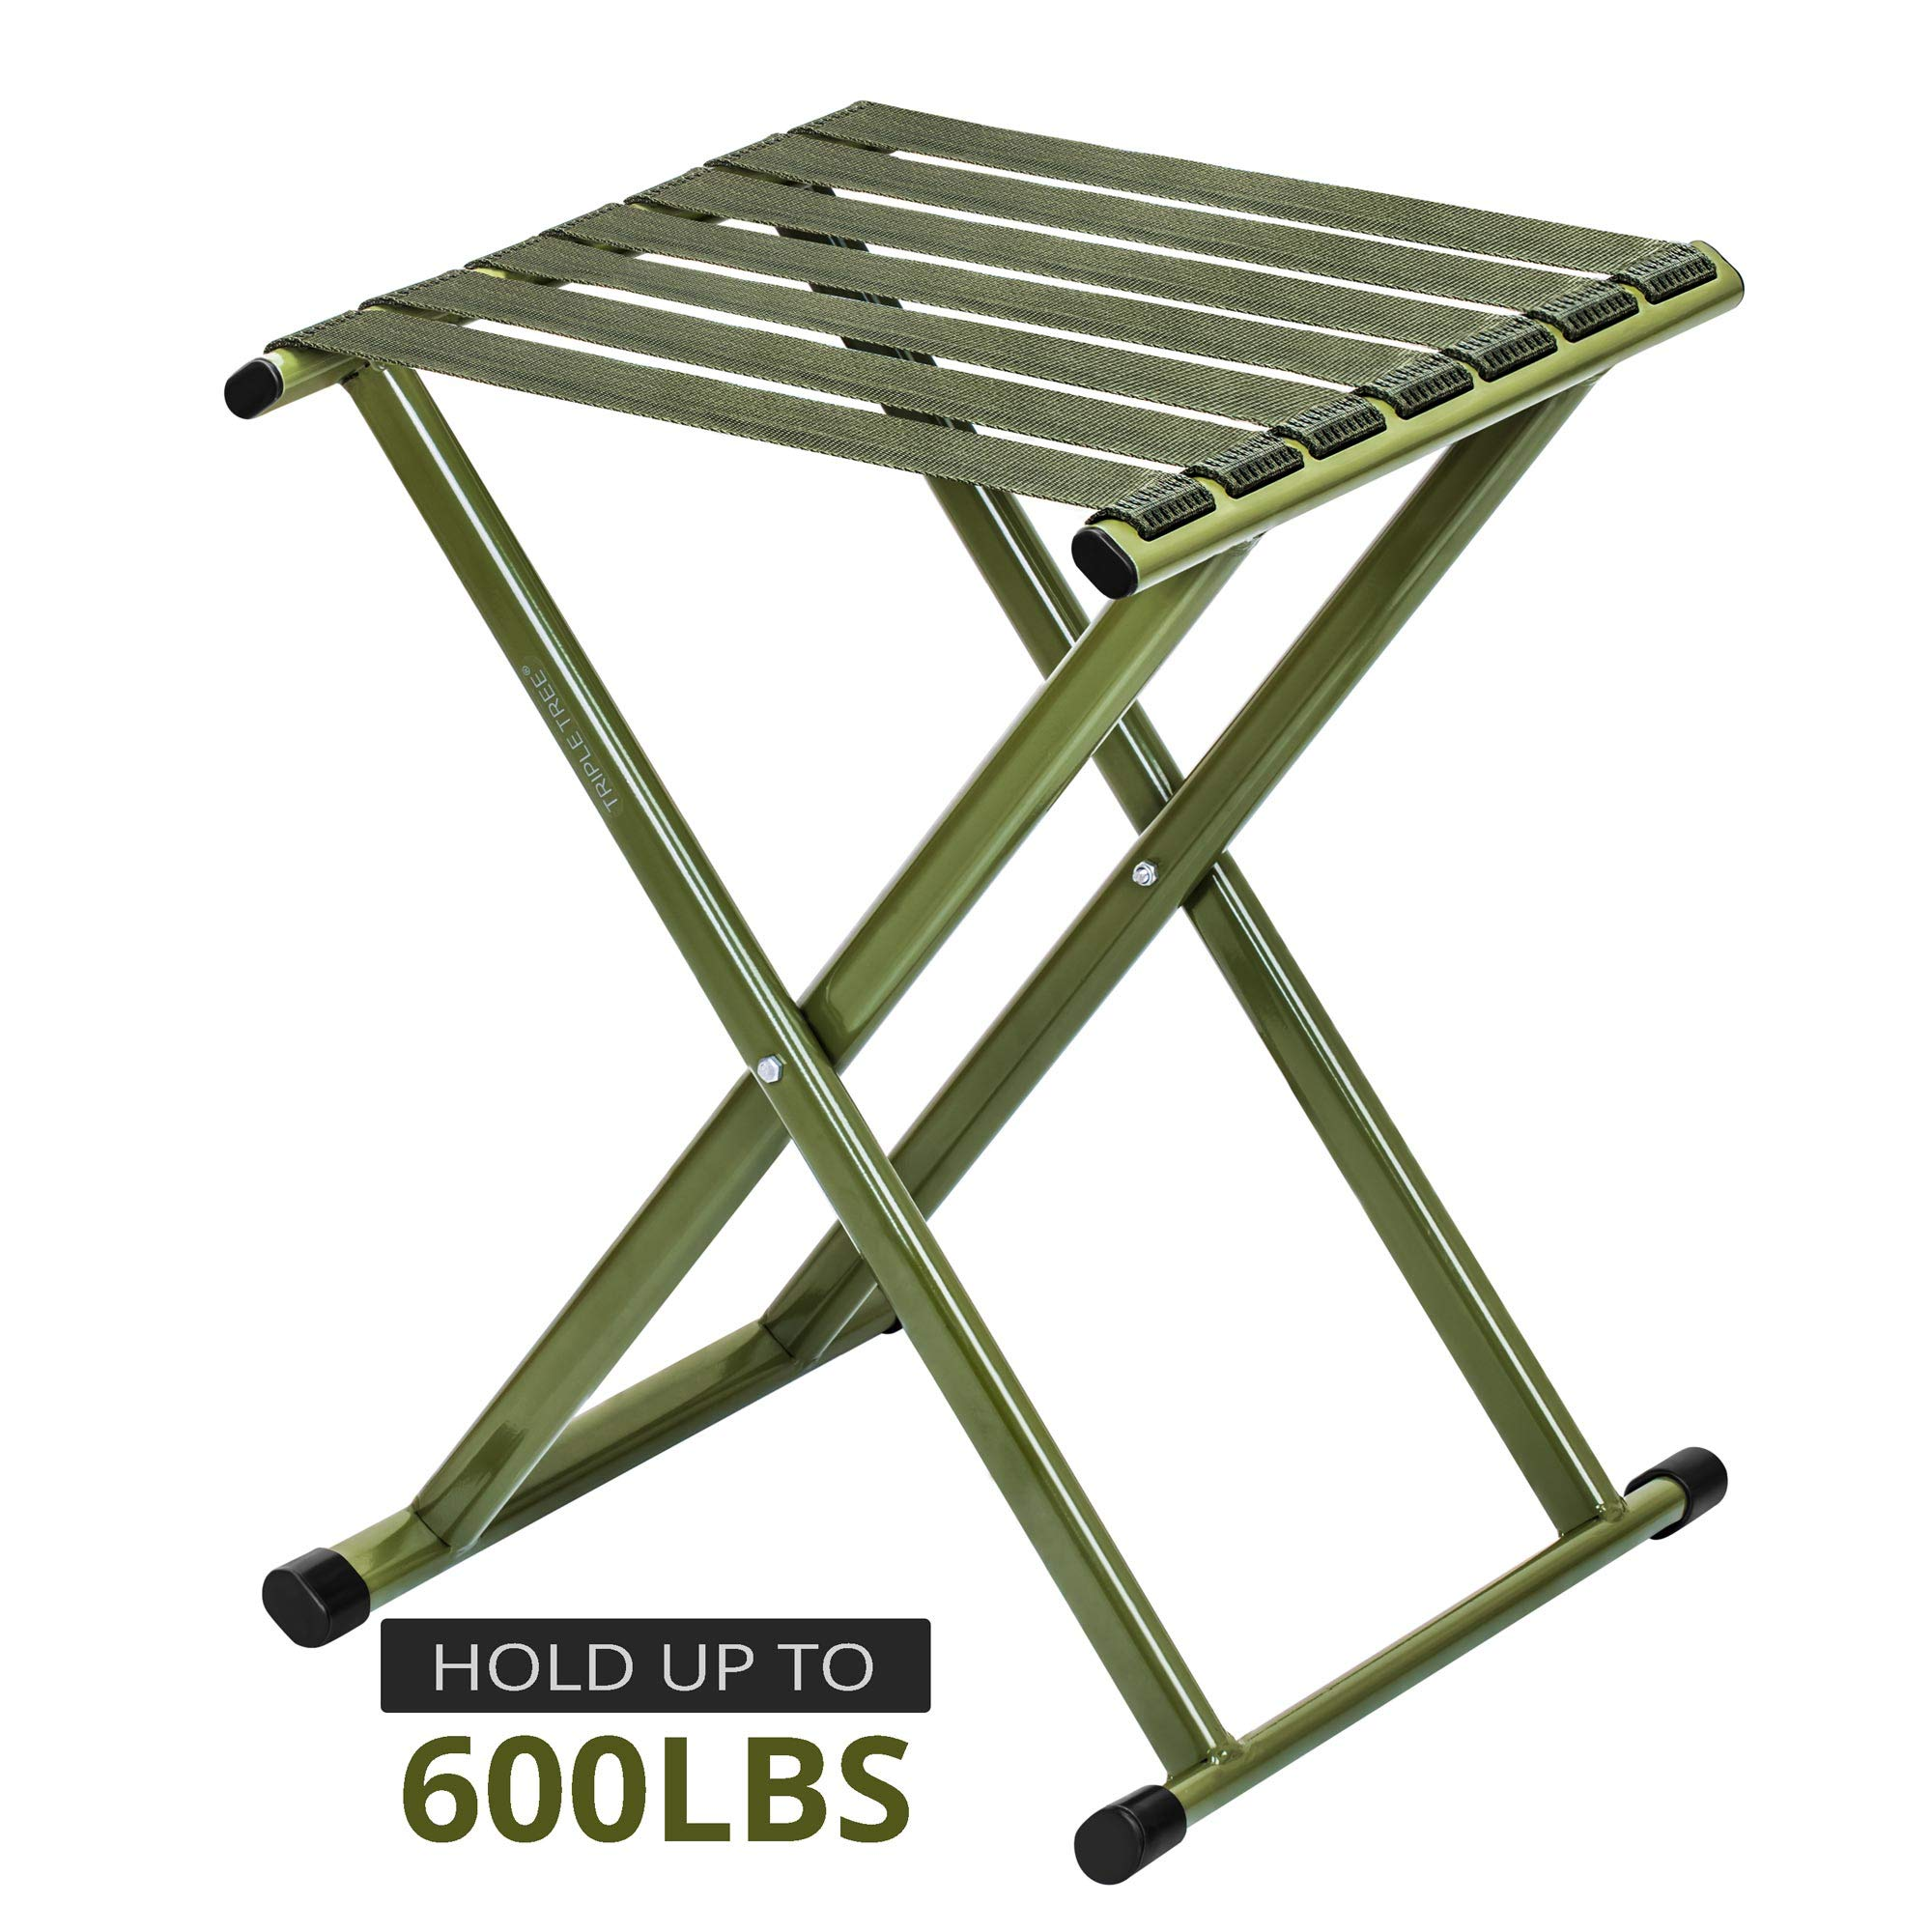 Folding Stool 17.8 Height, Super Strong Heavy Duty Outdoor Portable Folding Chair Hold up to 650 lbs, Unfold Size 13.9(L) x14.3(W) x17.8(H) Inch Pack of One (Large) by TRIPLE TREE